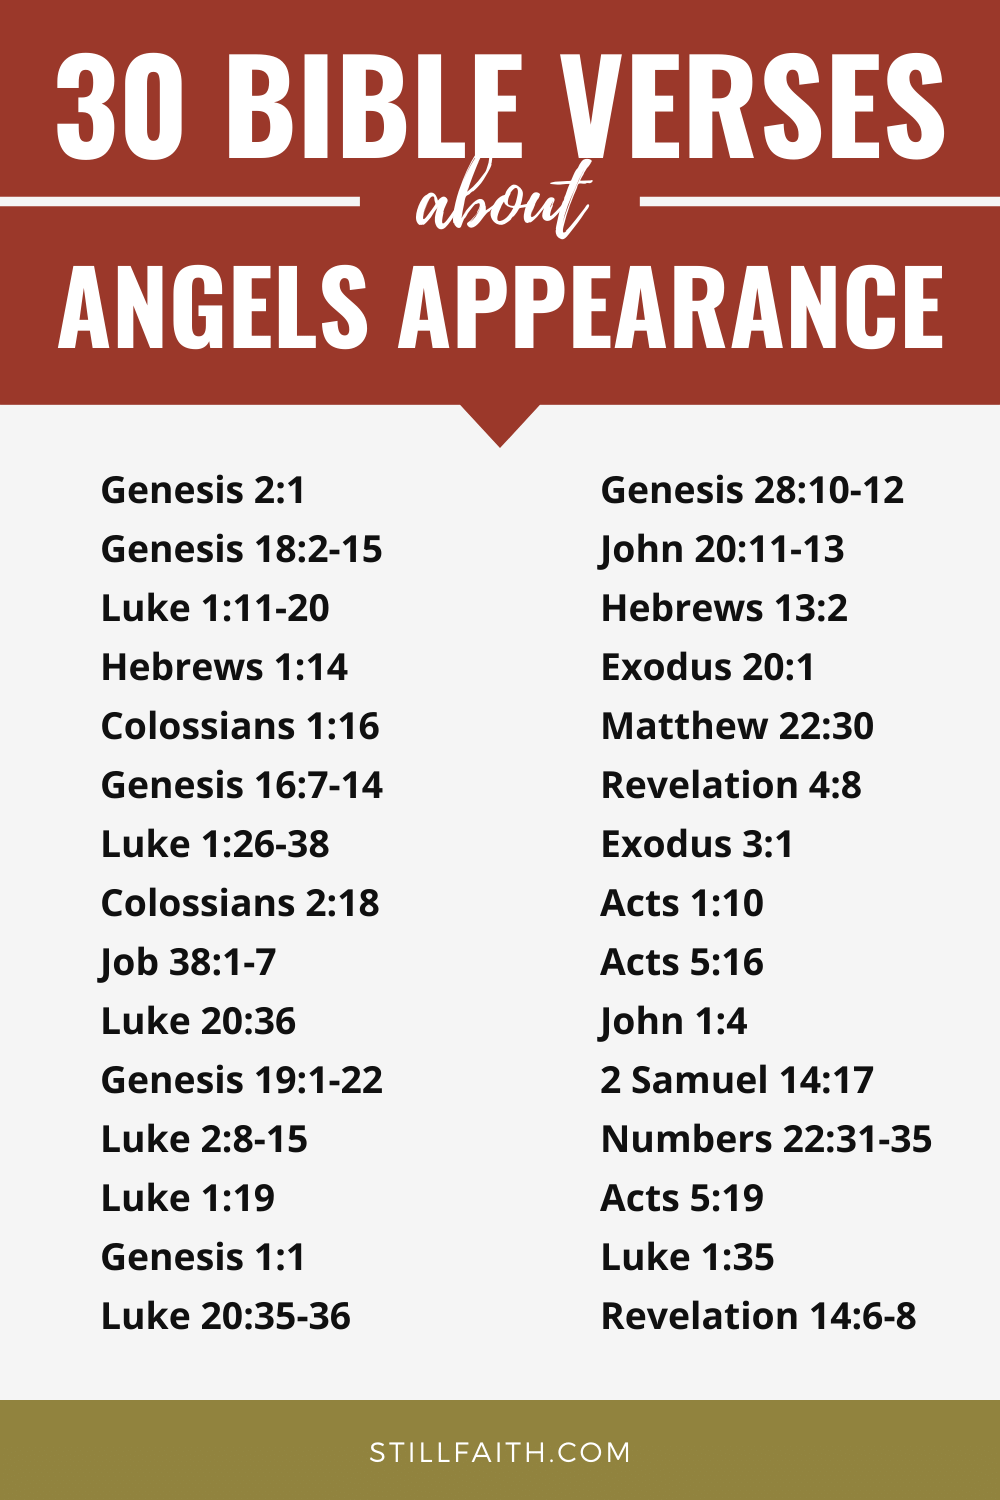 121 Bible Verses about Angels Appearance